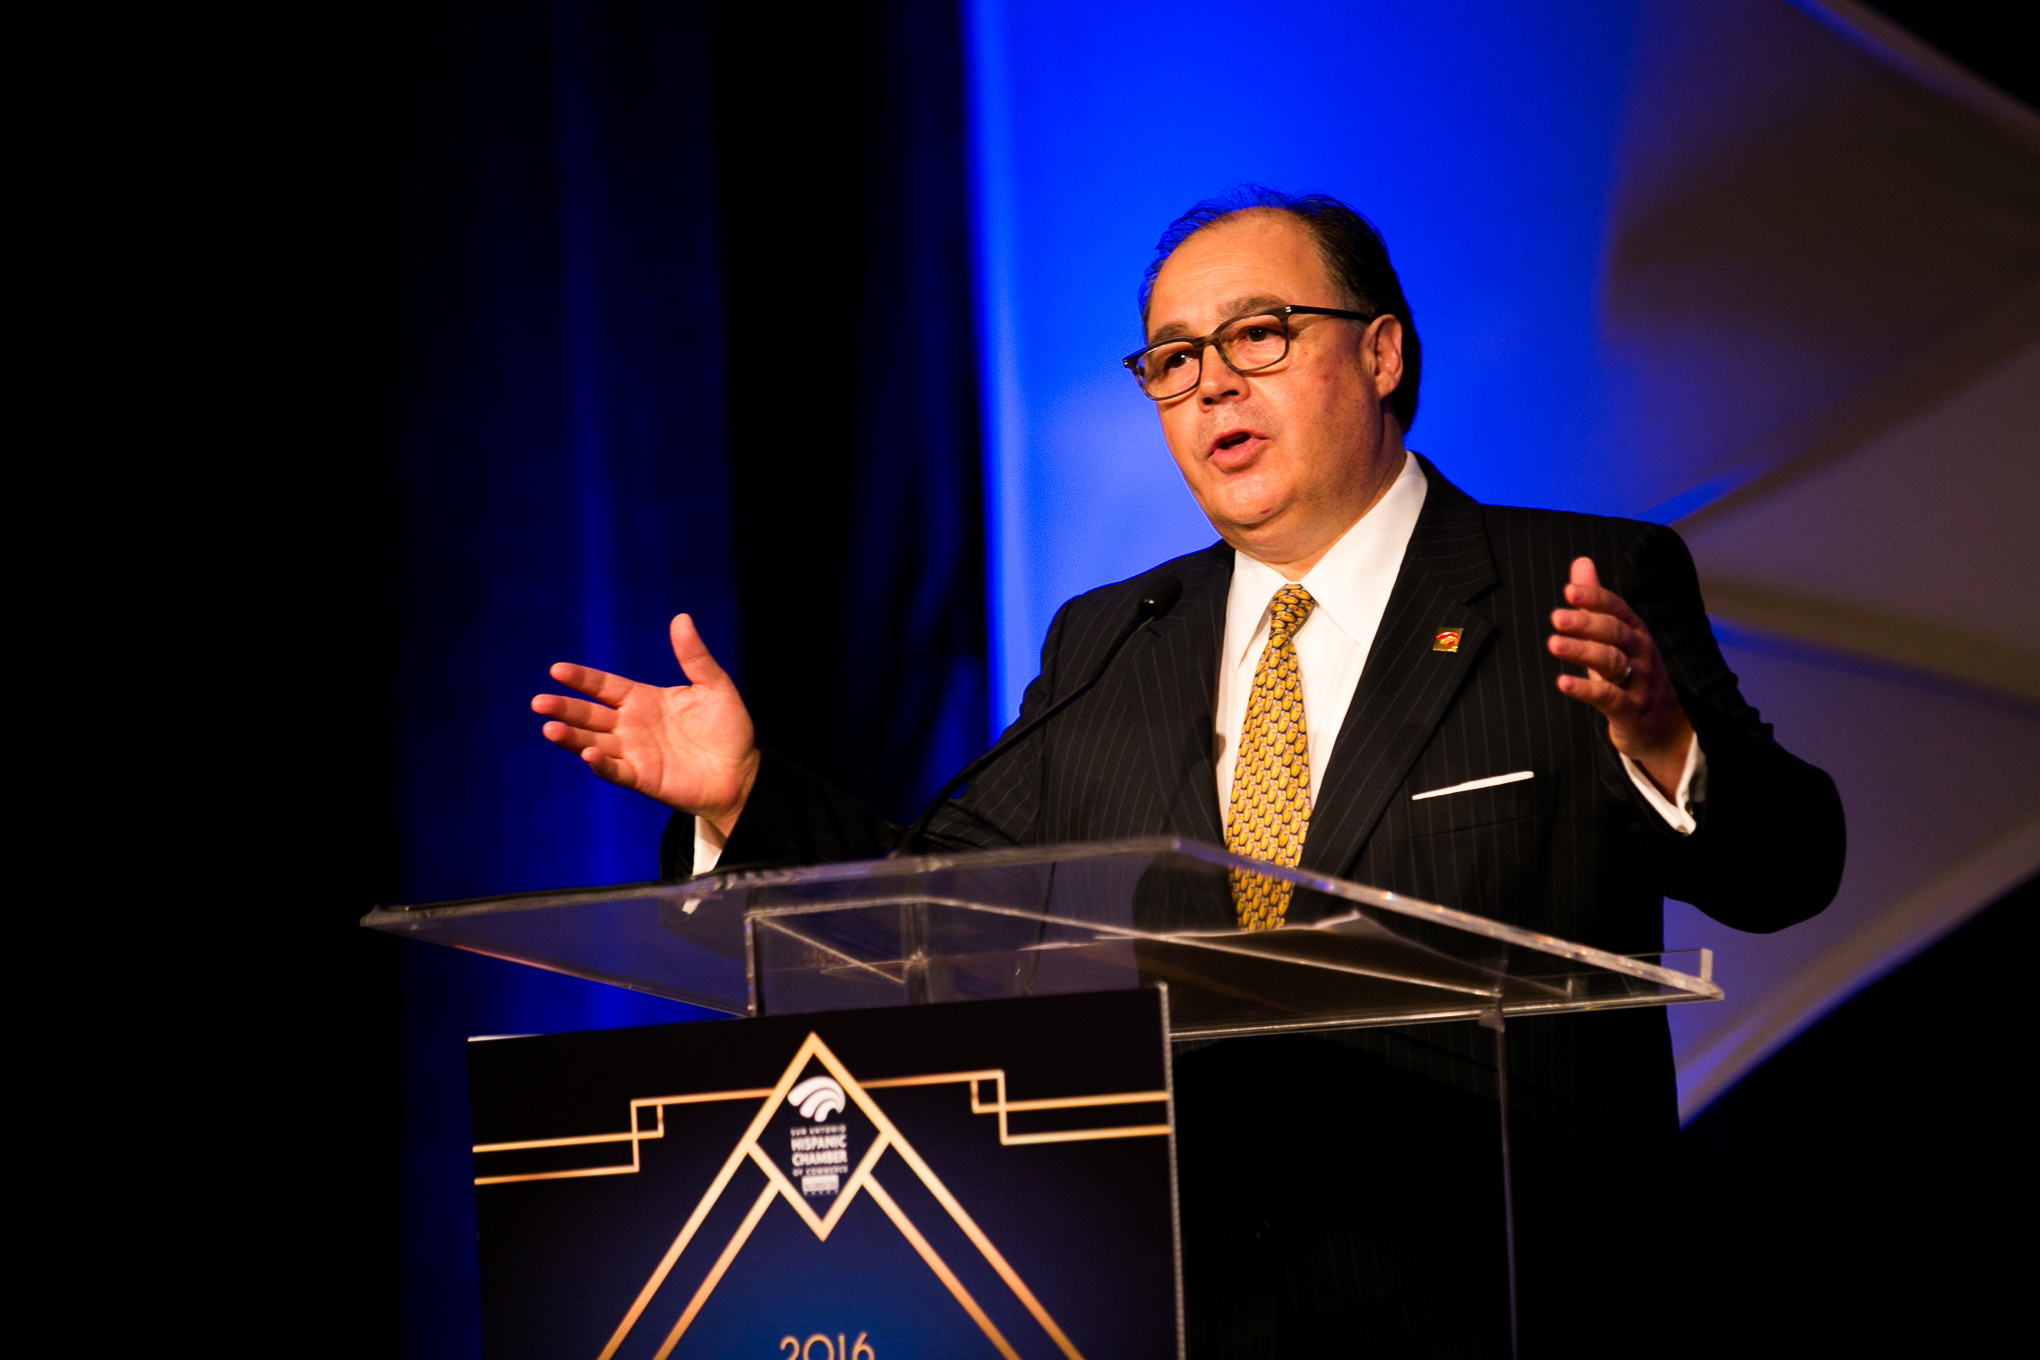 Hispanic Chamber of Commerce President and CEO Ramiro Cavazos welcomes attendees. Photo by Kathryn Boyd-Batstone.